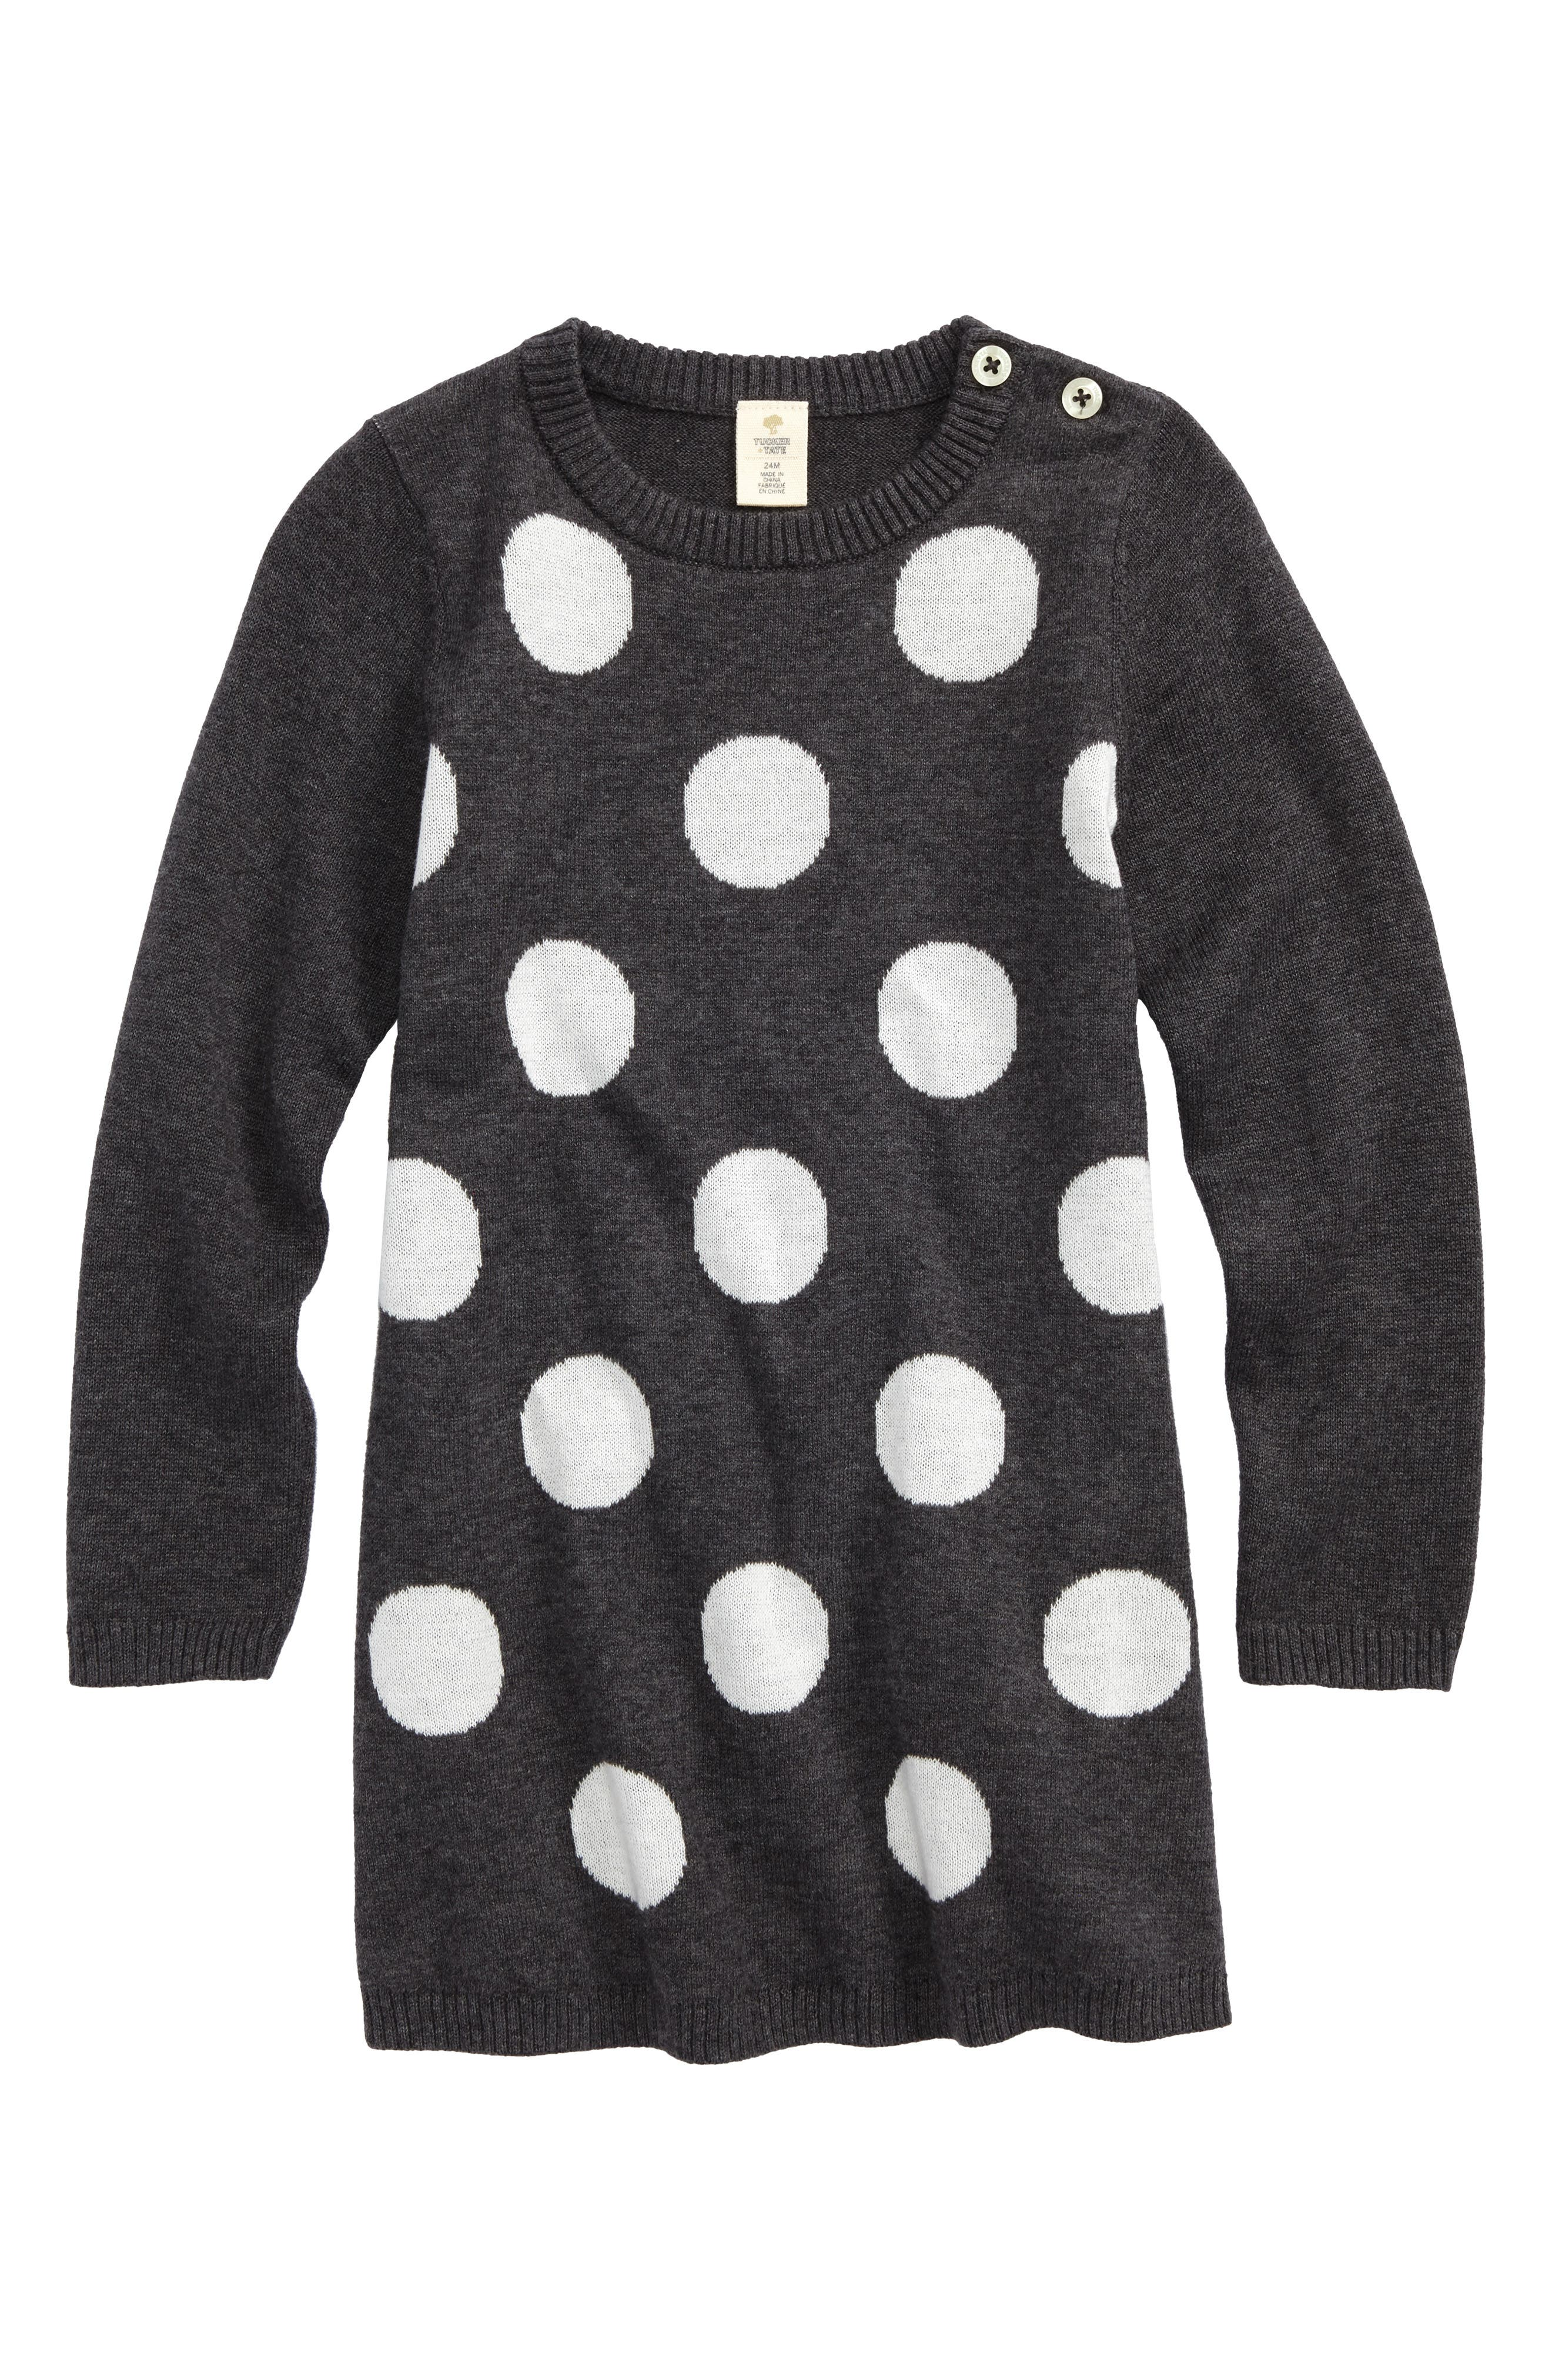 Polka Dot Sweater Dress,                             Main thumbnail 1, color,                             Grey Charcoal Heather Dot